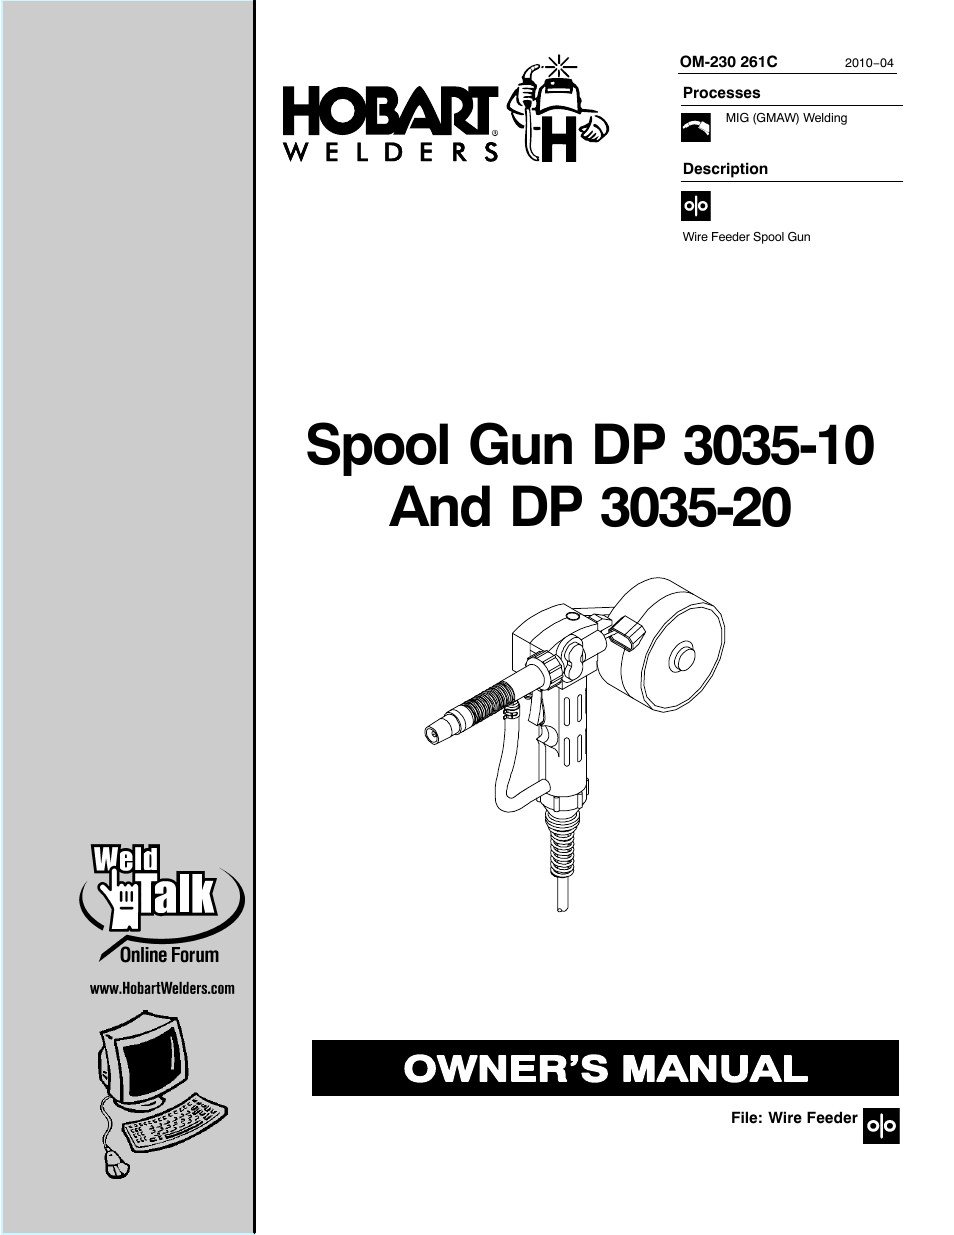 Hobart Welding Products SPOOL GUN DP 3035-10 User Manual